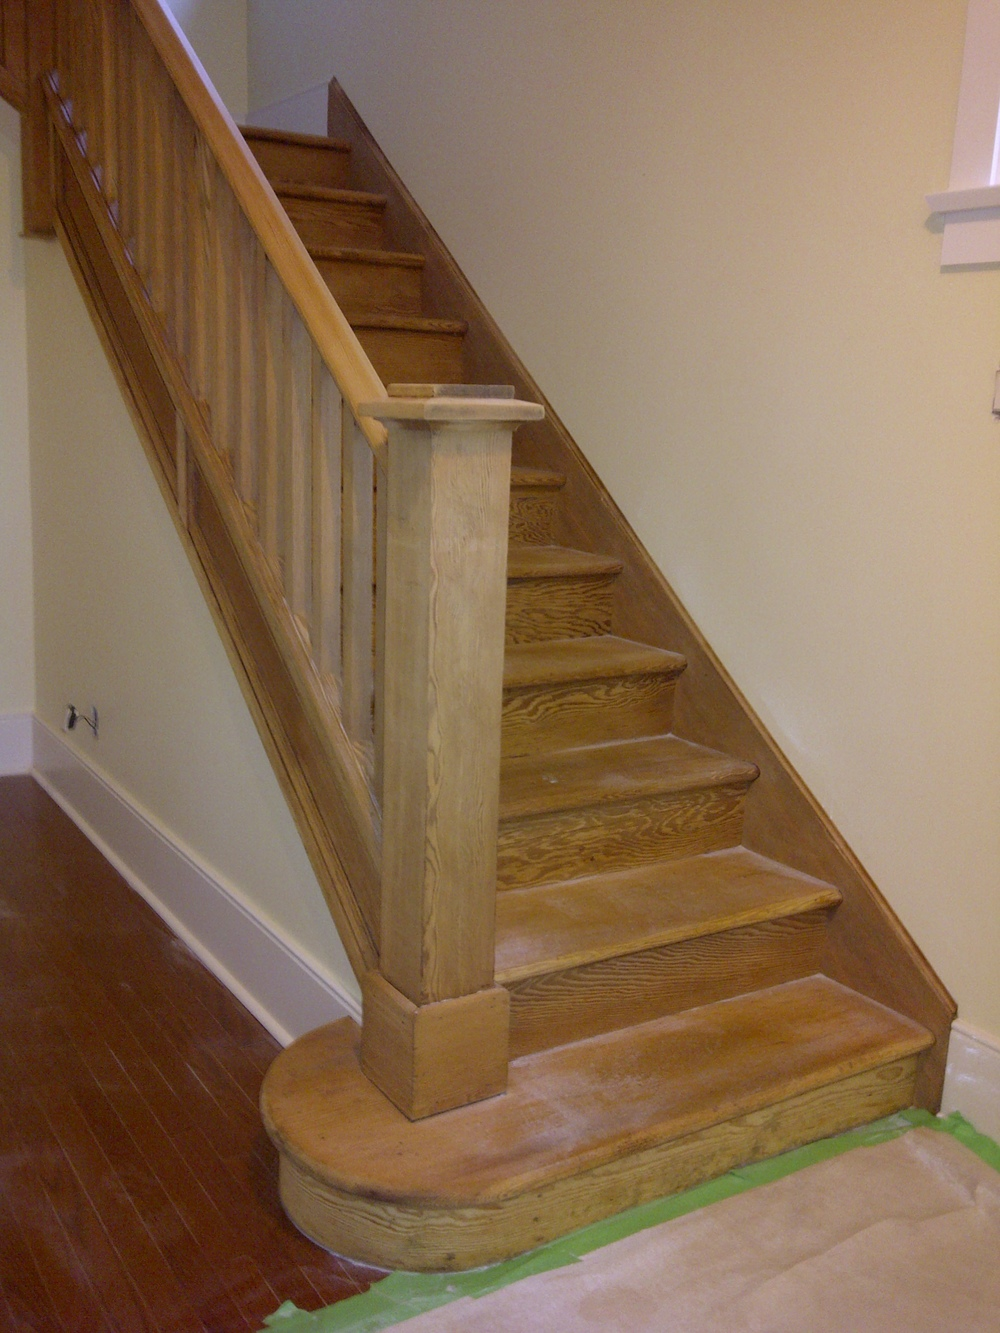 staircase after blasting.jpg